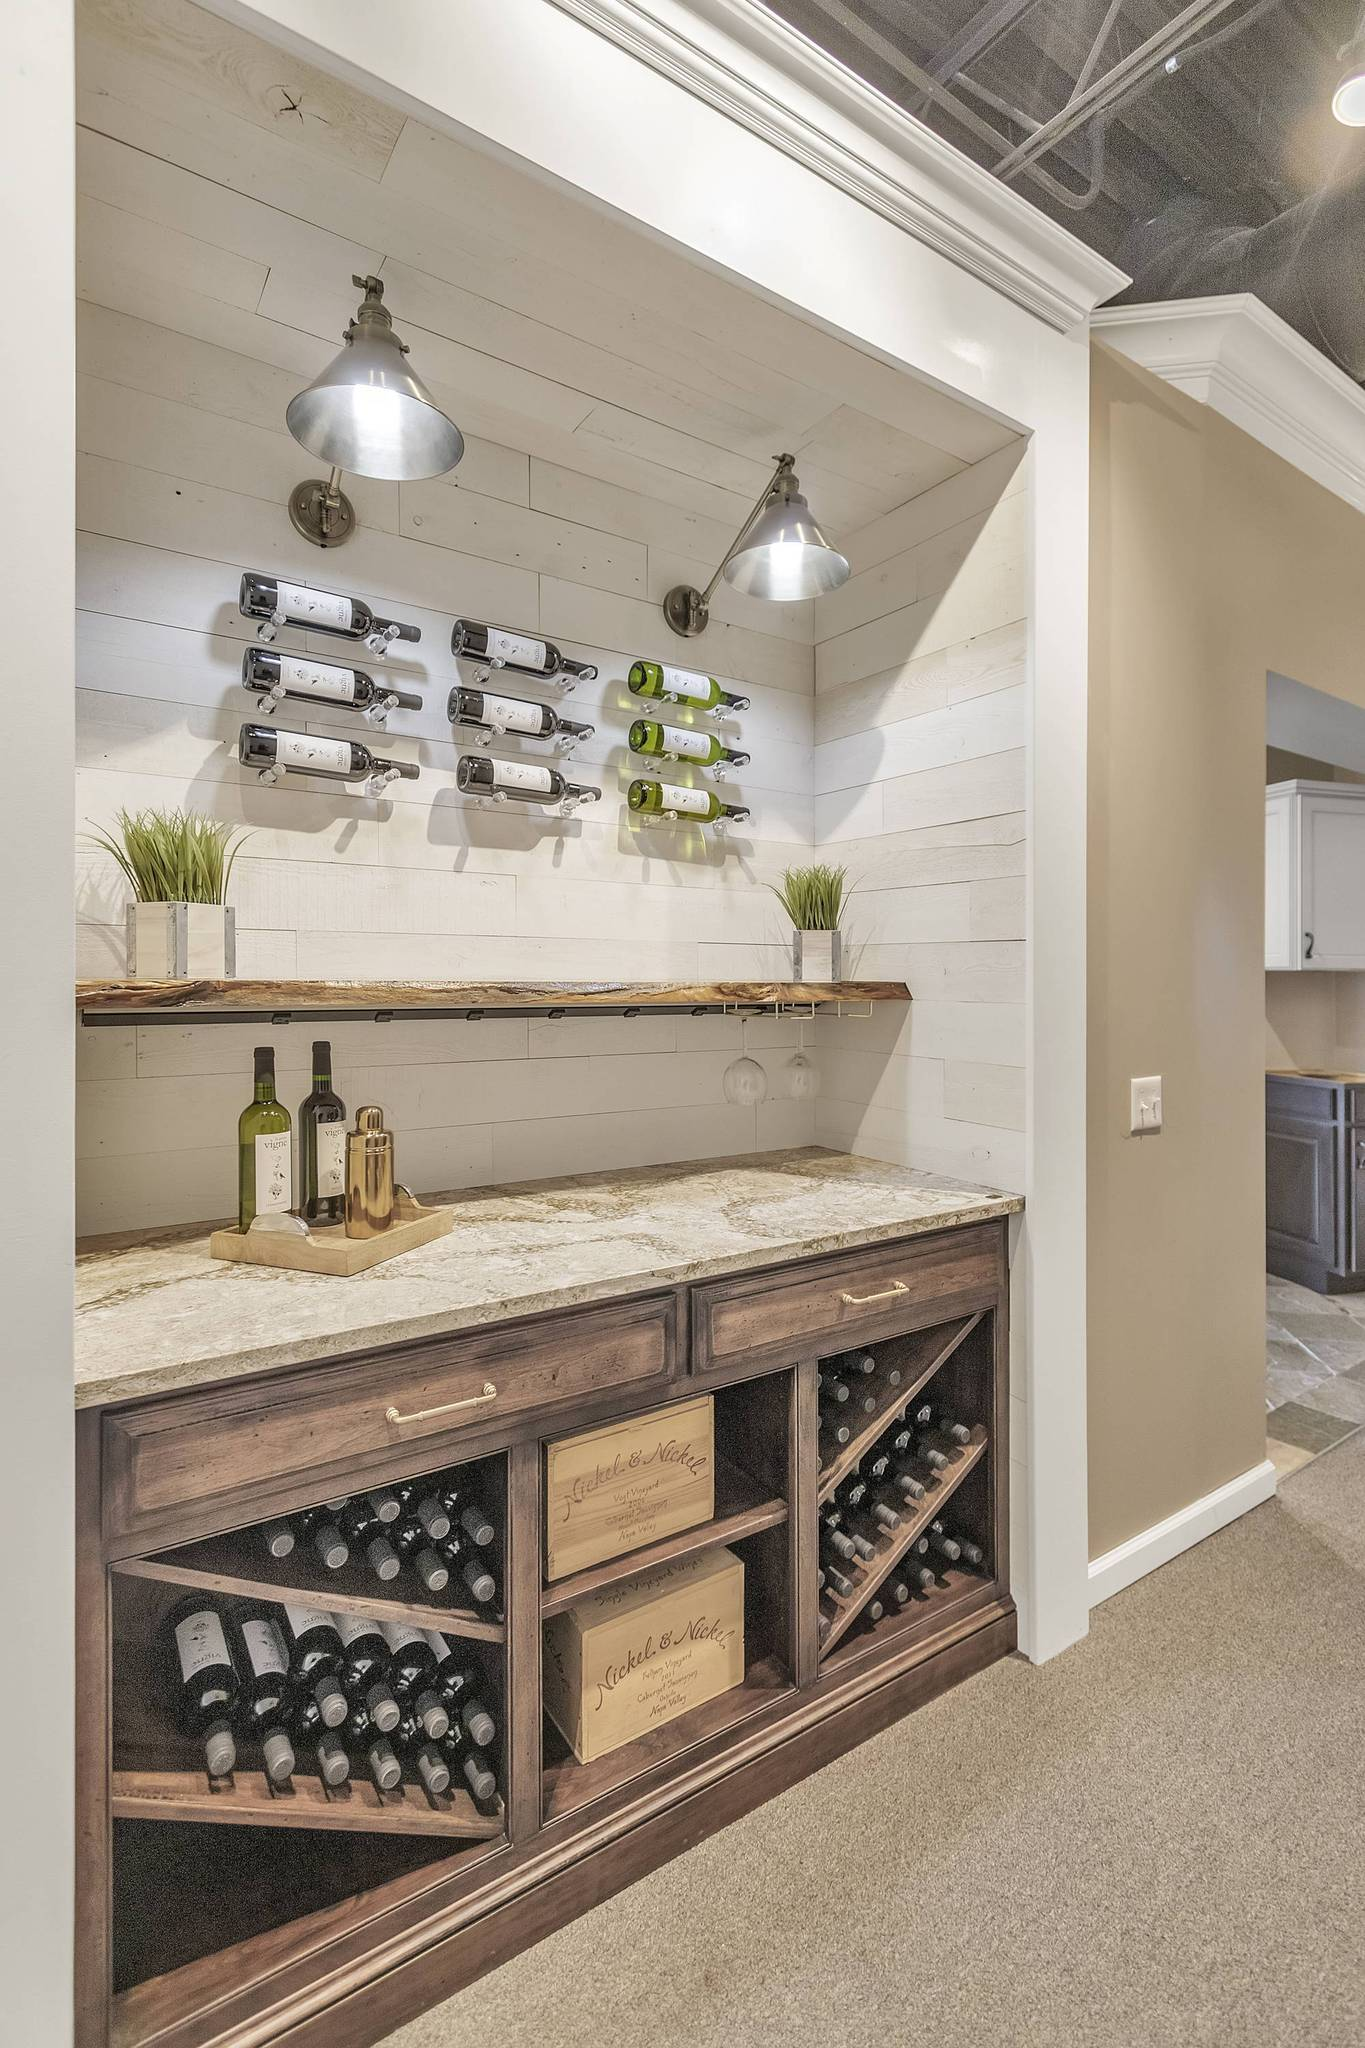 E.W. Kitchen showroom presentation of wine bar and Hamptons peel and stick wood planks that creates a nice shiplap look.